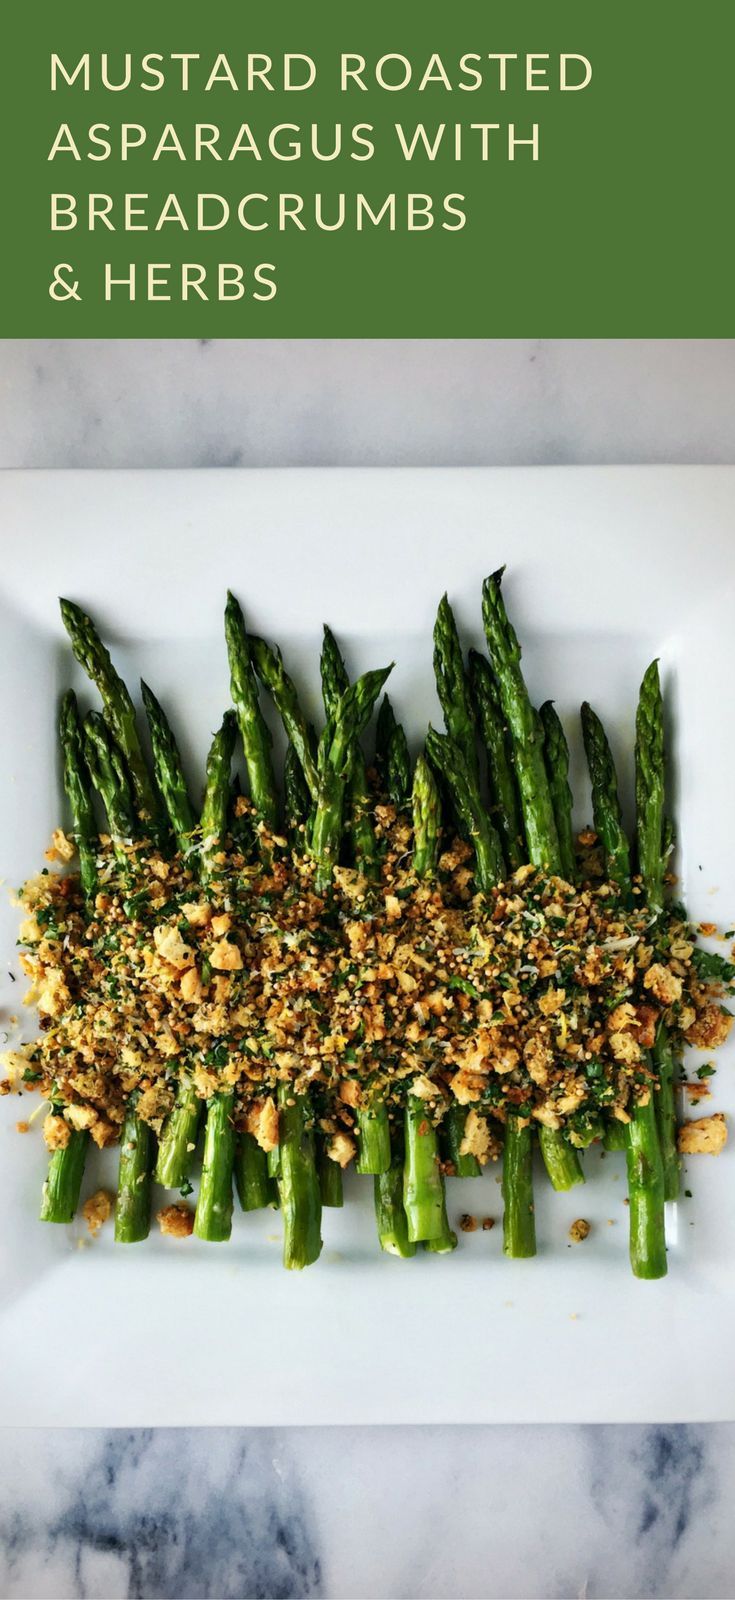 Mustard Roasted Asparagus with Breadcrumbs and Herbs | #MyMustard